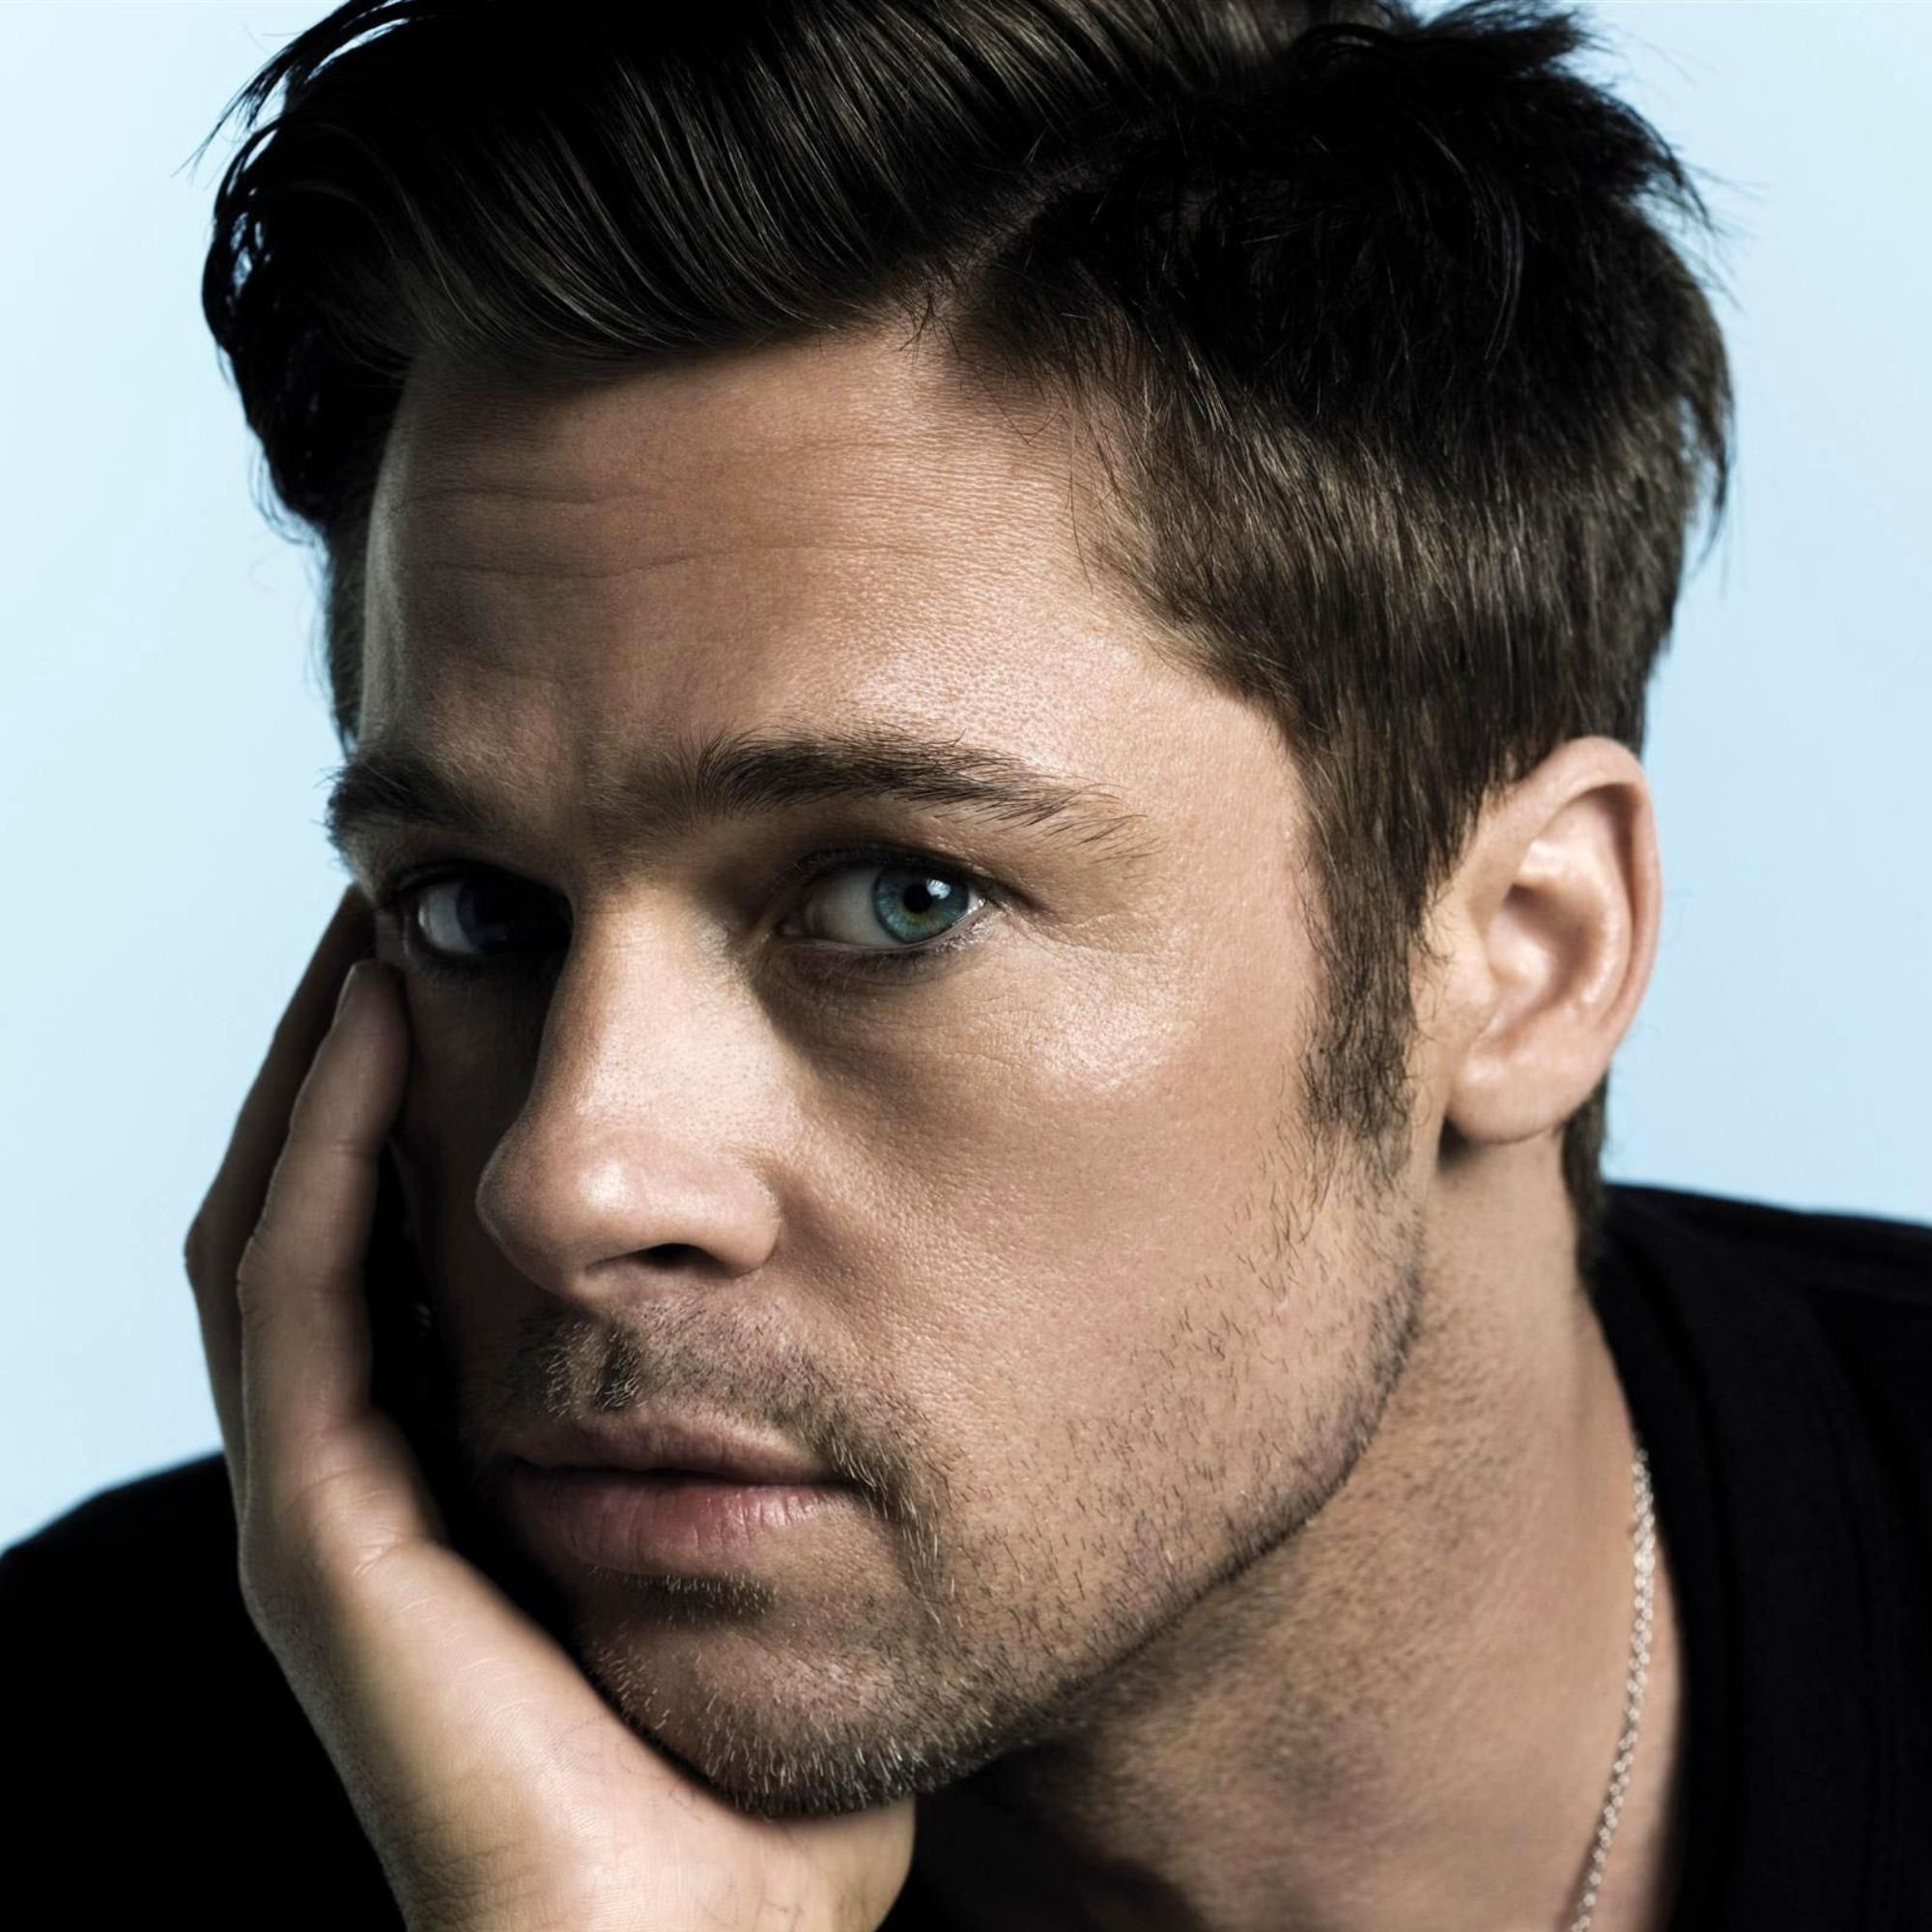 brad pitt troybrad pitt 2016, brad pitt 2017, brad pitt movies, brad pitt instagram, brad pitt films, brad pitt filmleri, brad pitt fury, brad pitt filmi, brad pitt fight club, brad pitt height, brad pitt young, brad pitt wiki, brad pitt news, brad pitt allied, brad pitt hairstyle, brad pitt tattoo, brad pitt biography, brad pitt troy, brad pitt jennifer aniston, brad pitt oscar